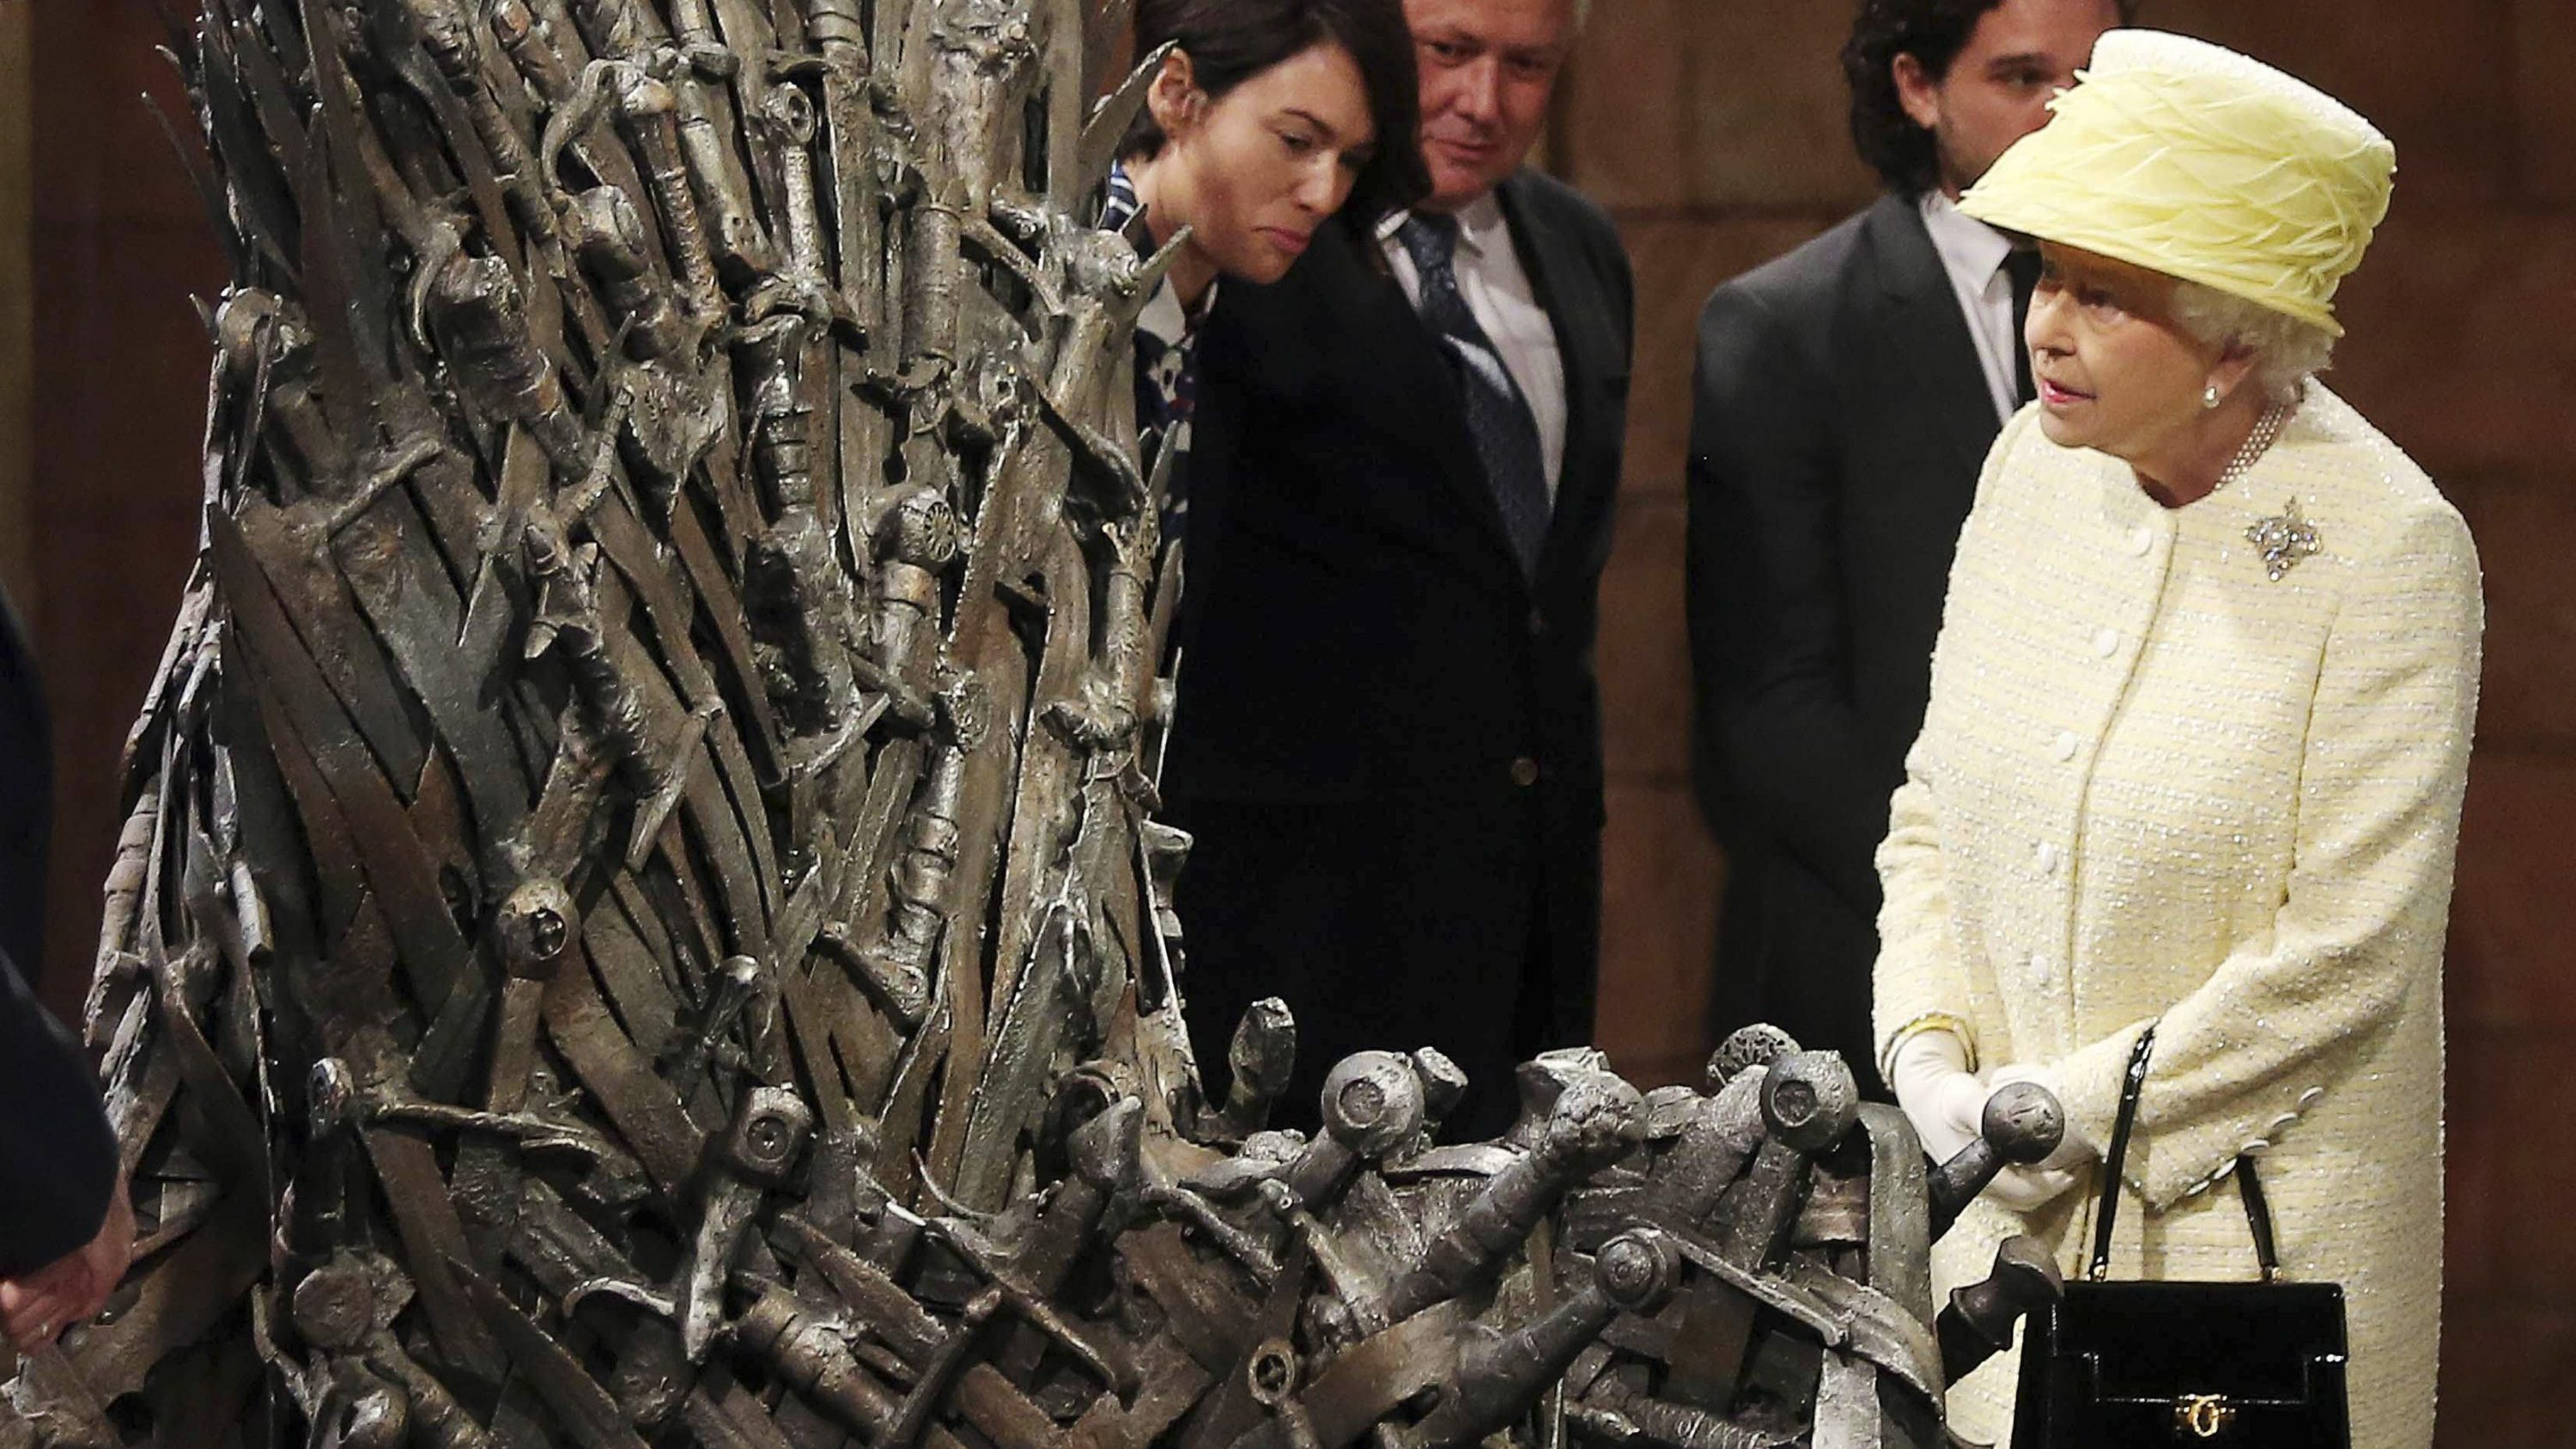 Queen Elizabeth and the Iron Throne